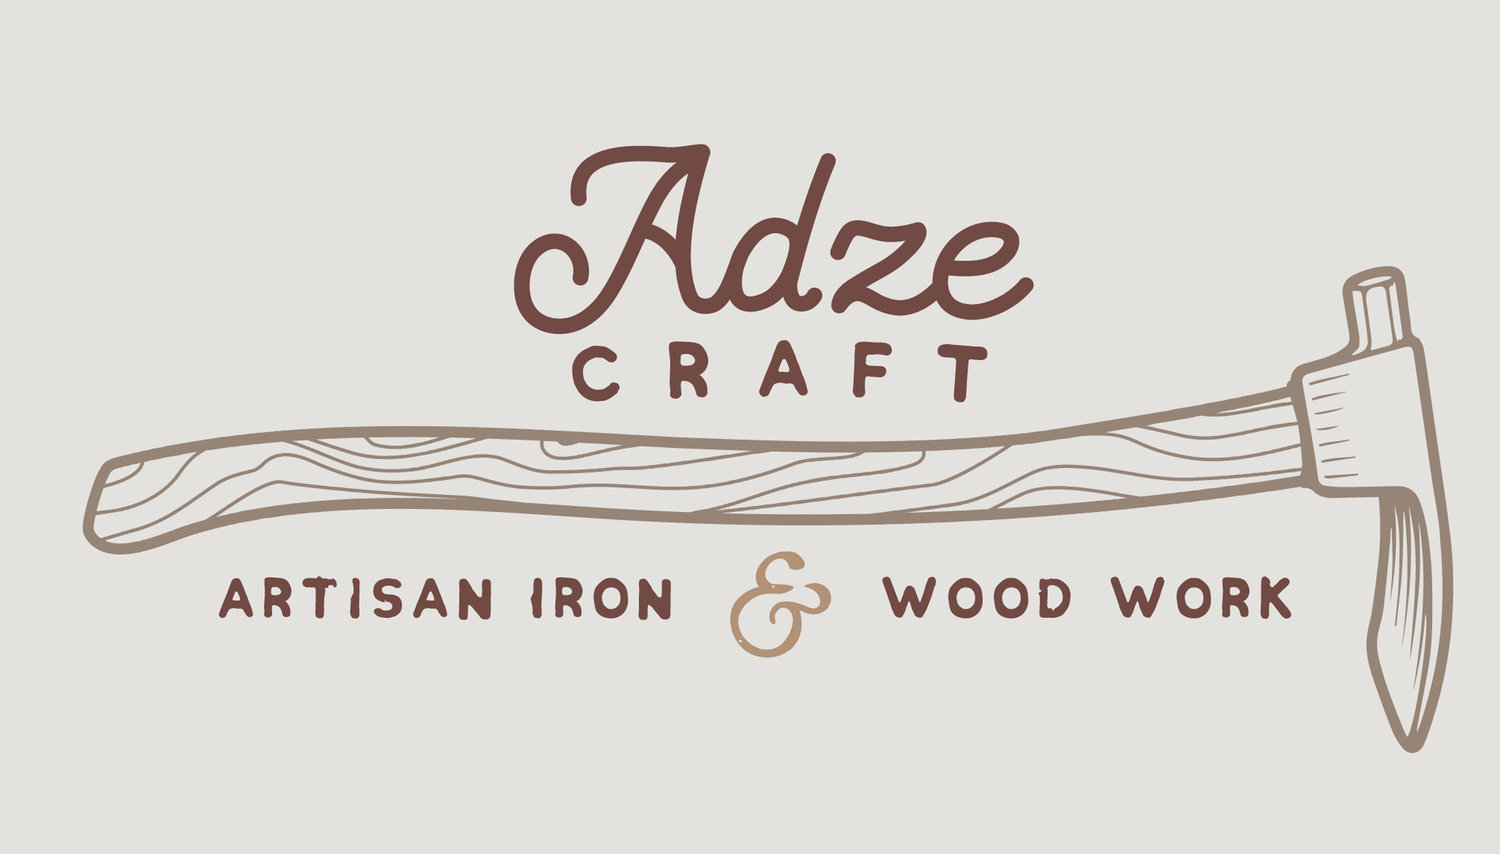 Adze Craft